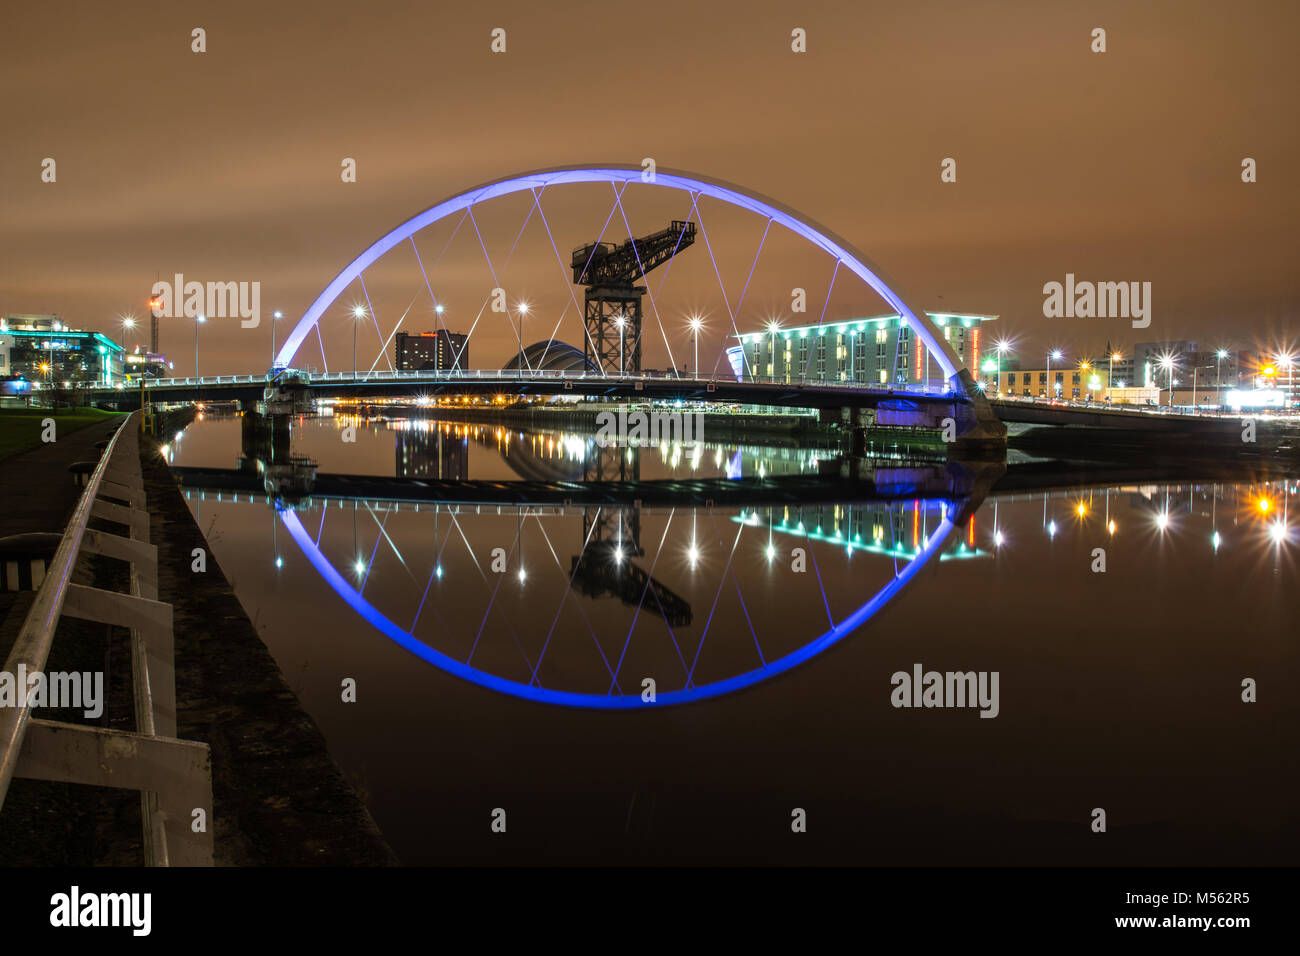 A night shot of the Finnieston Crane also known as the Stobcross Crane, framed in the lights of the Squinty Bridge, - Stock Image